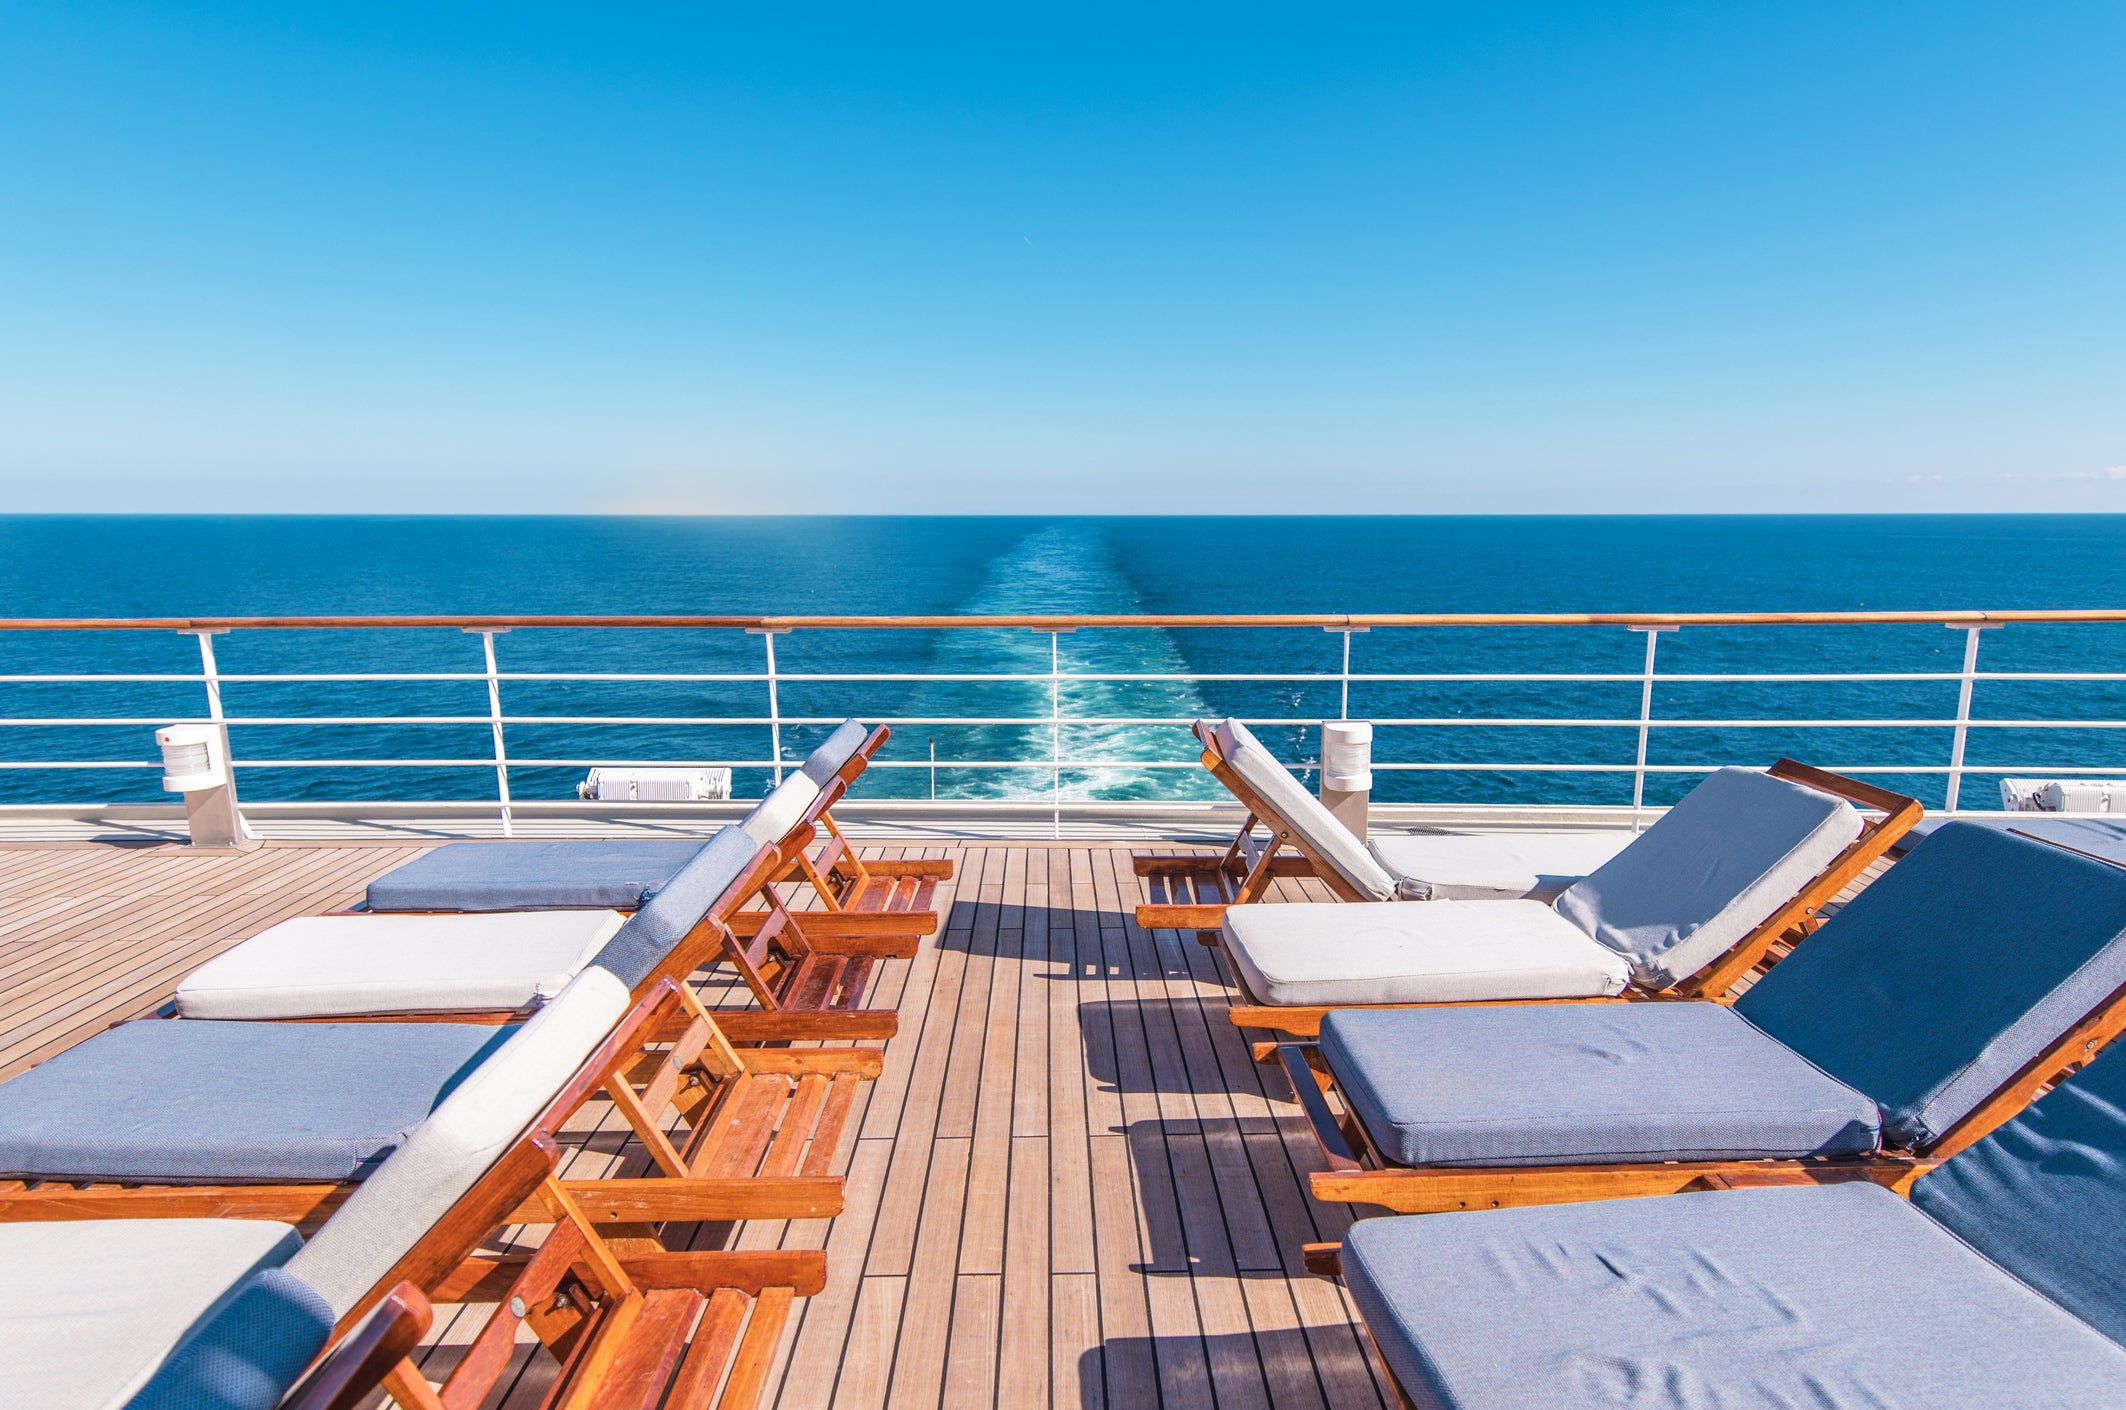 Best And Worst Cruise Line Based On Traveler Reviews The Motley Fool